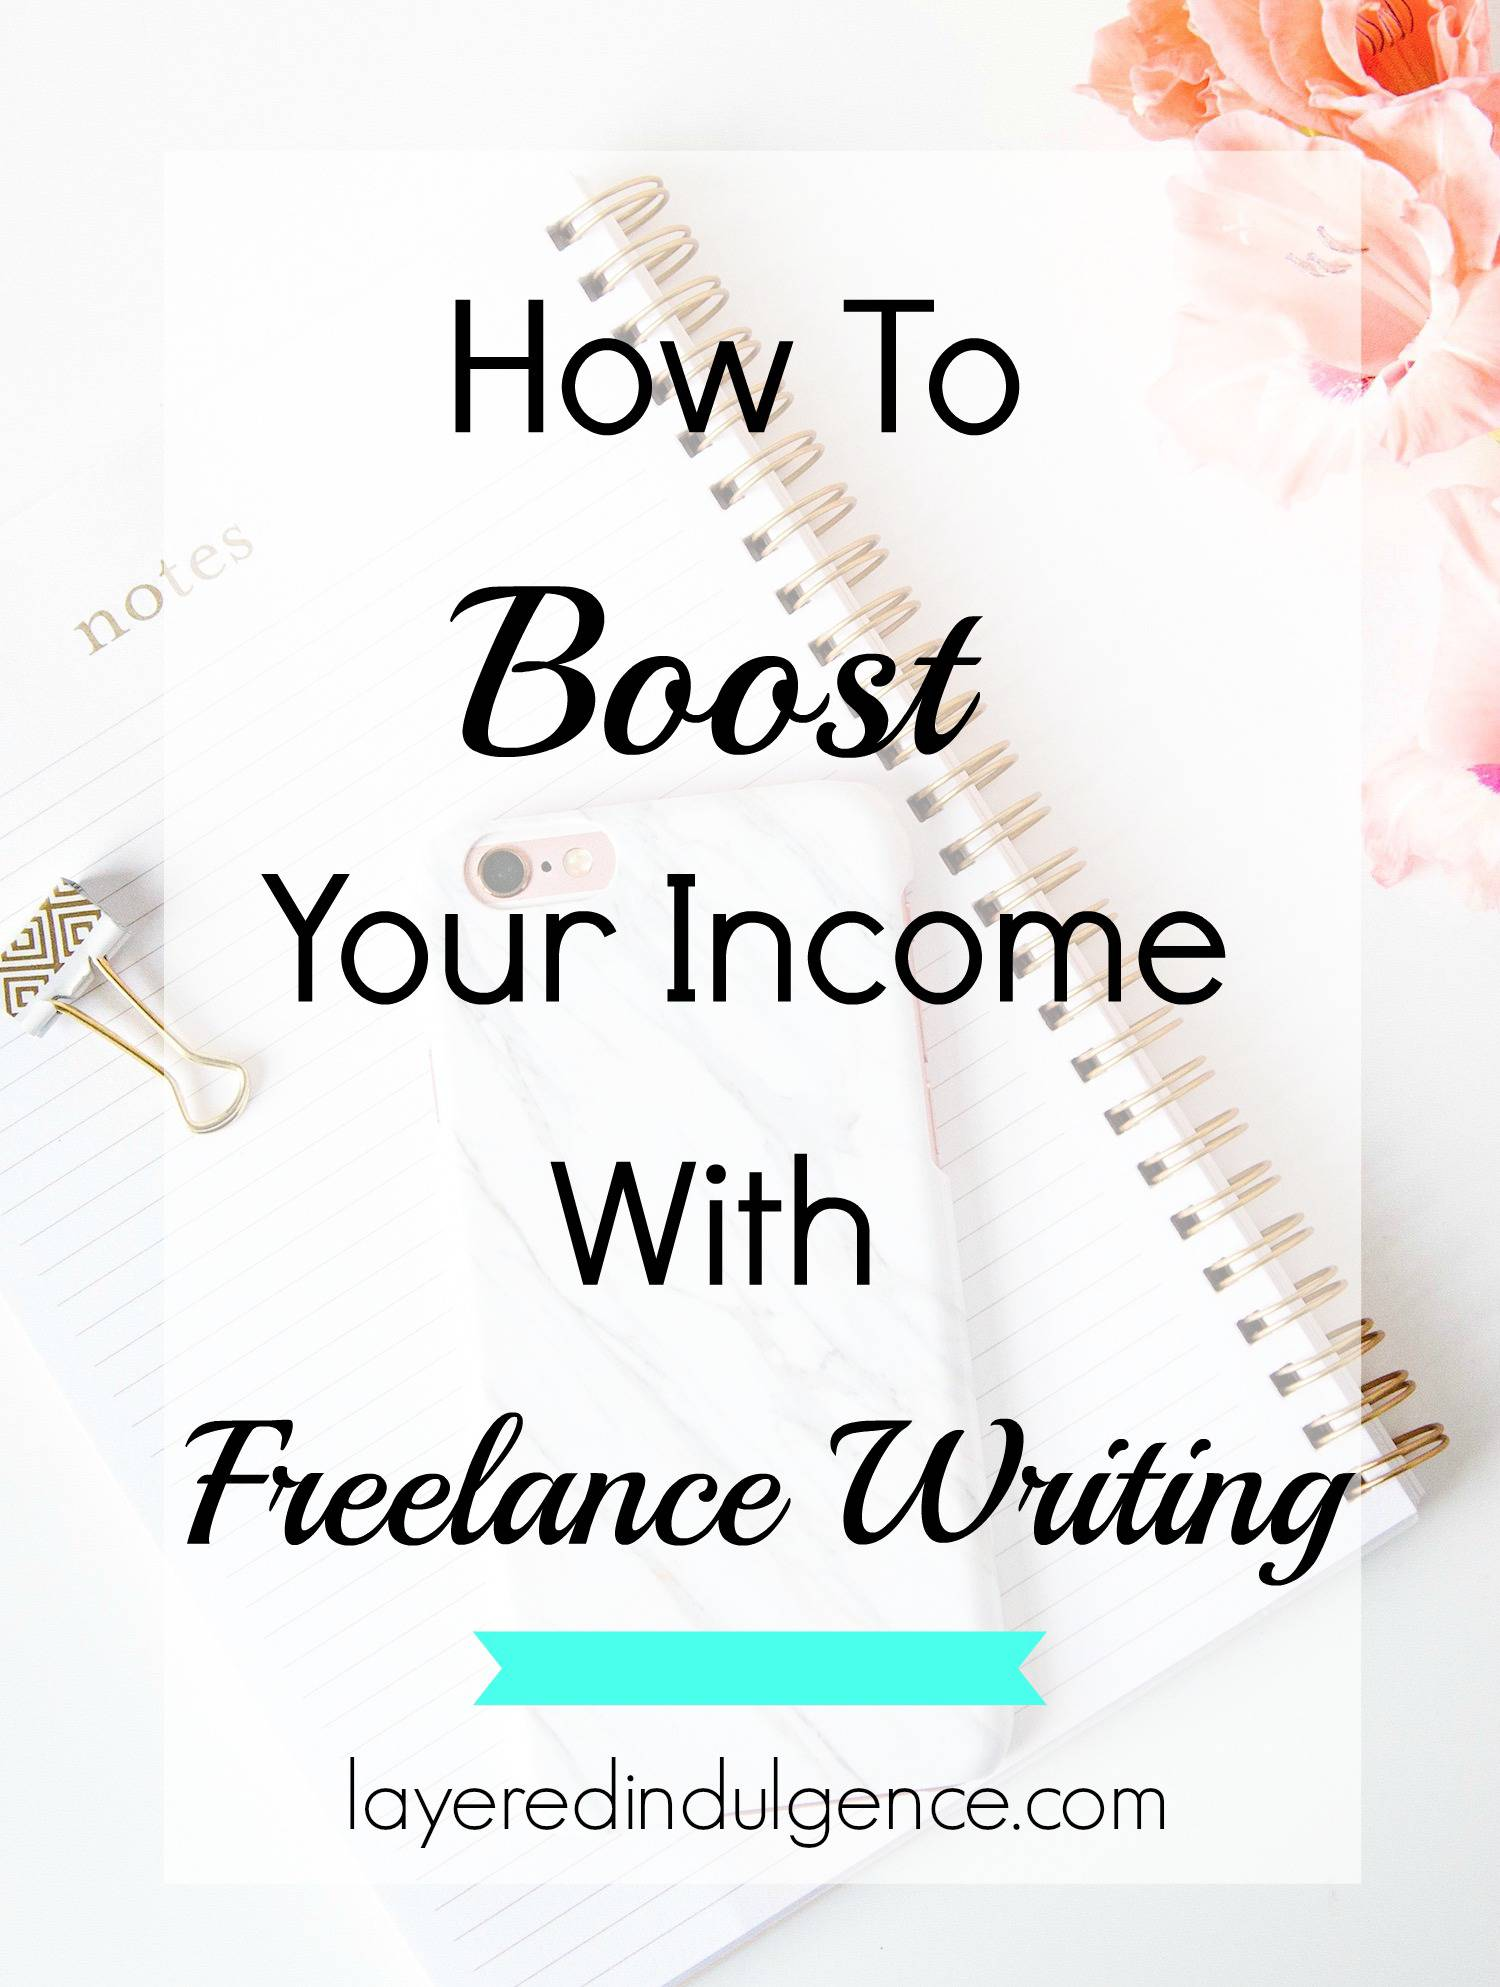 One way to boost your income as a blogger is freelance writing! If you're interested in freelance writing but not sure where to get started, click through to read this post! It's filled with tips and ideas that are perfect for beginners looking for freelance writing jobs! Read it now or save this pin for later!